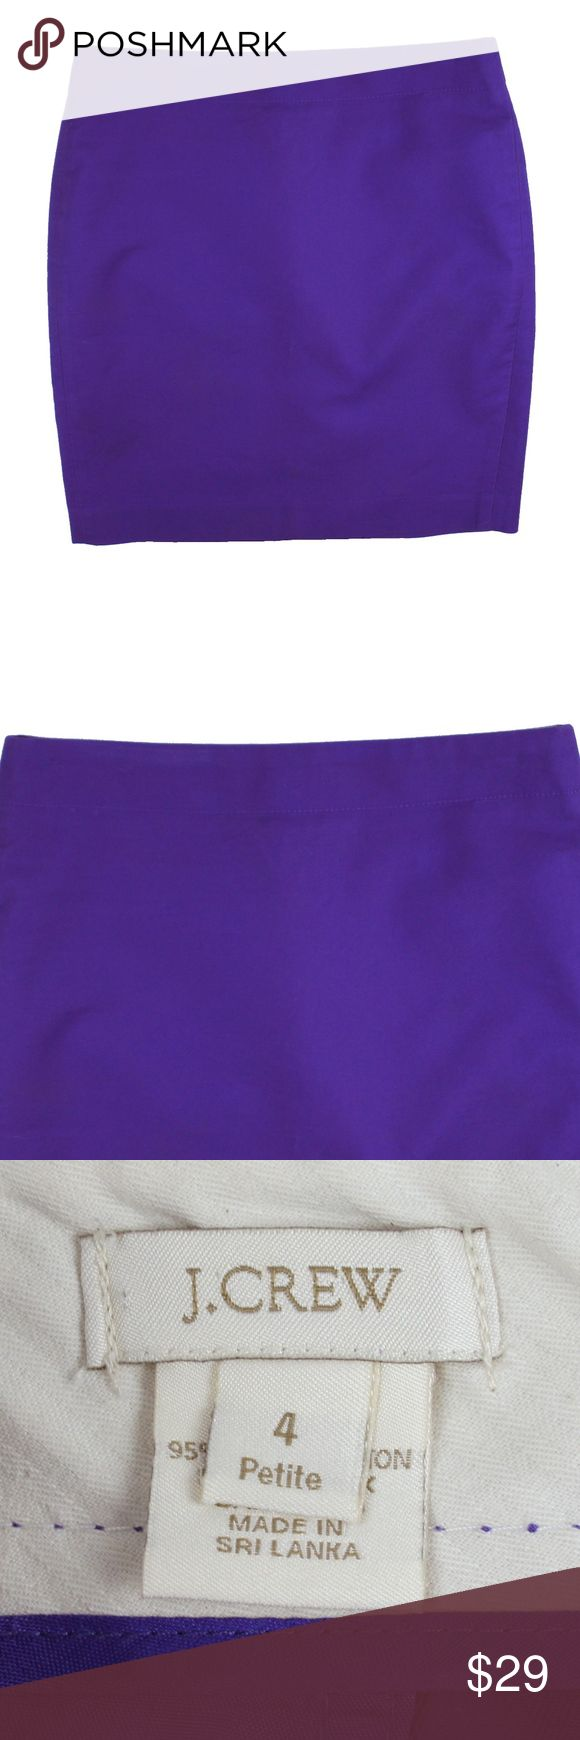 "J CREW Purple Cotton No. 2 Pencil Skirt Size - 4 P  This purple pencil skirt from JCREW is in excellent condition. It features a zip up closure. Made of 95% Cotton, 5% Lycra  Measures: Waist: 29"" Hips: 37"" Total Length: 19"" J. Crew Skirts Pencil"